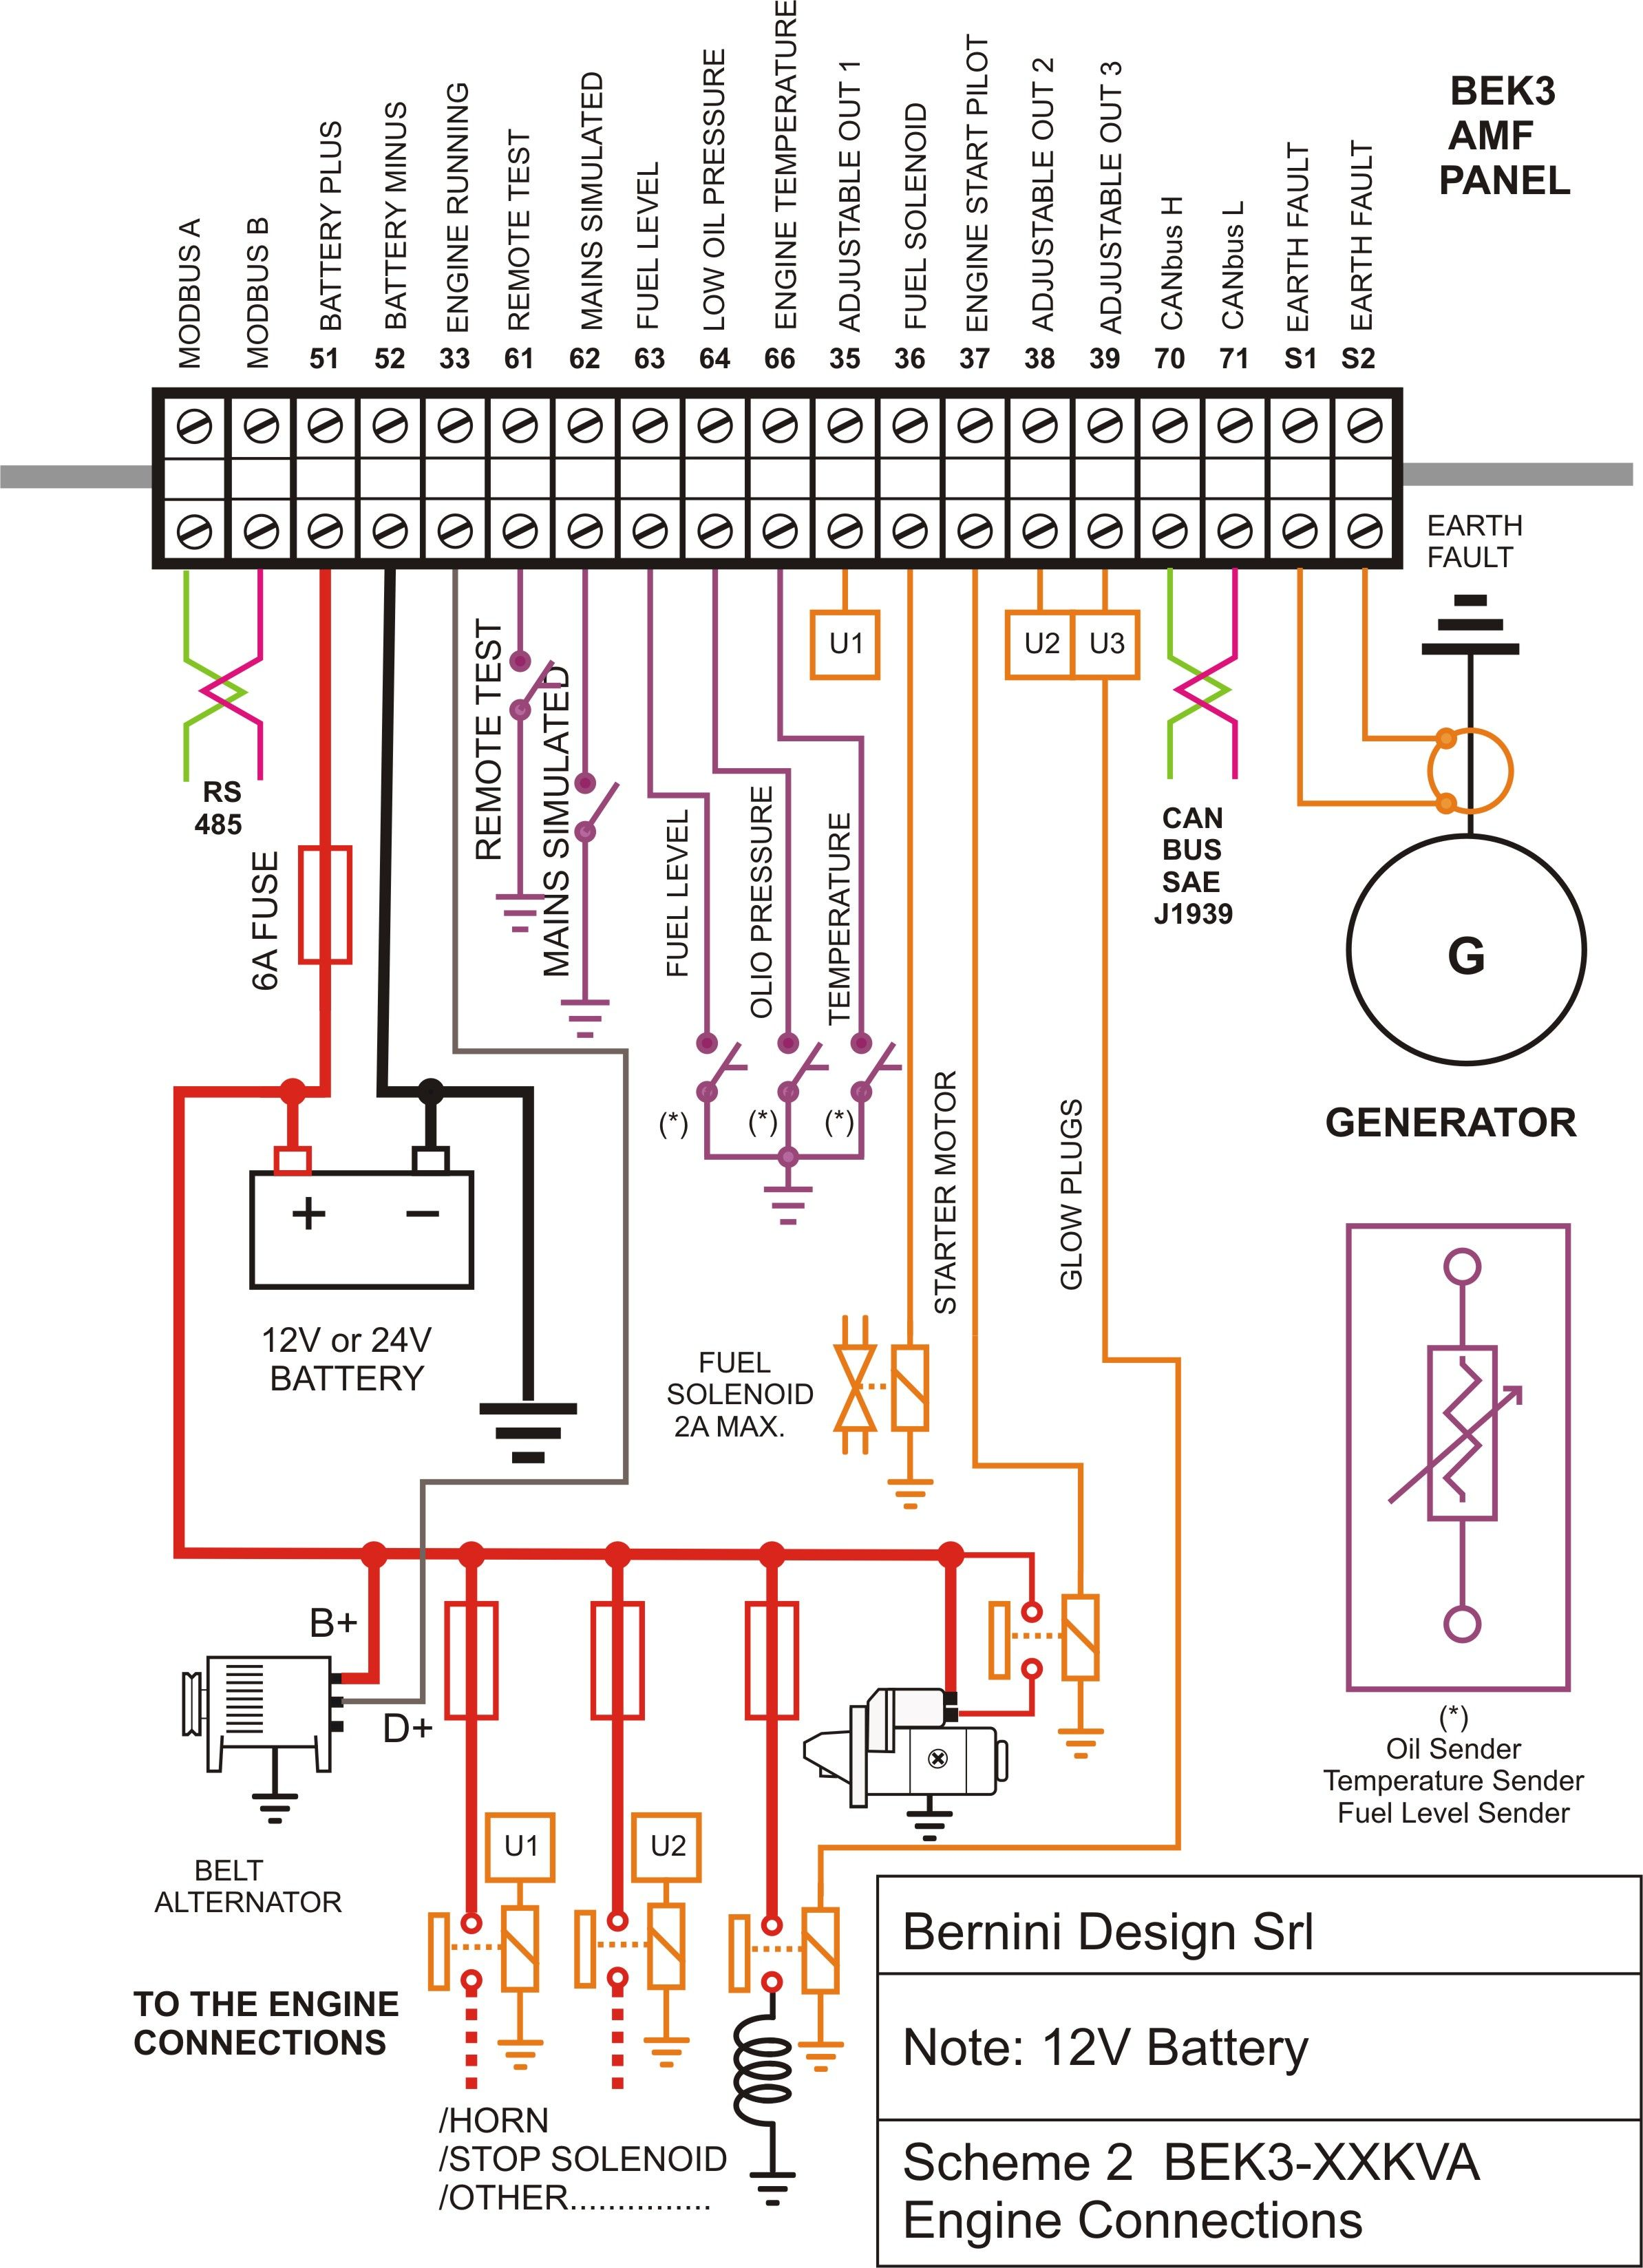 diesel generator control panel wiring diagram Engine Connections |  Electrical circuit diagram, Basic electrical wiring, Electrical wiring  diagramPinterest